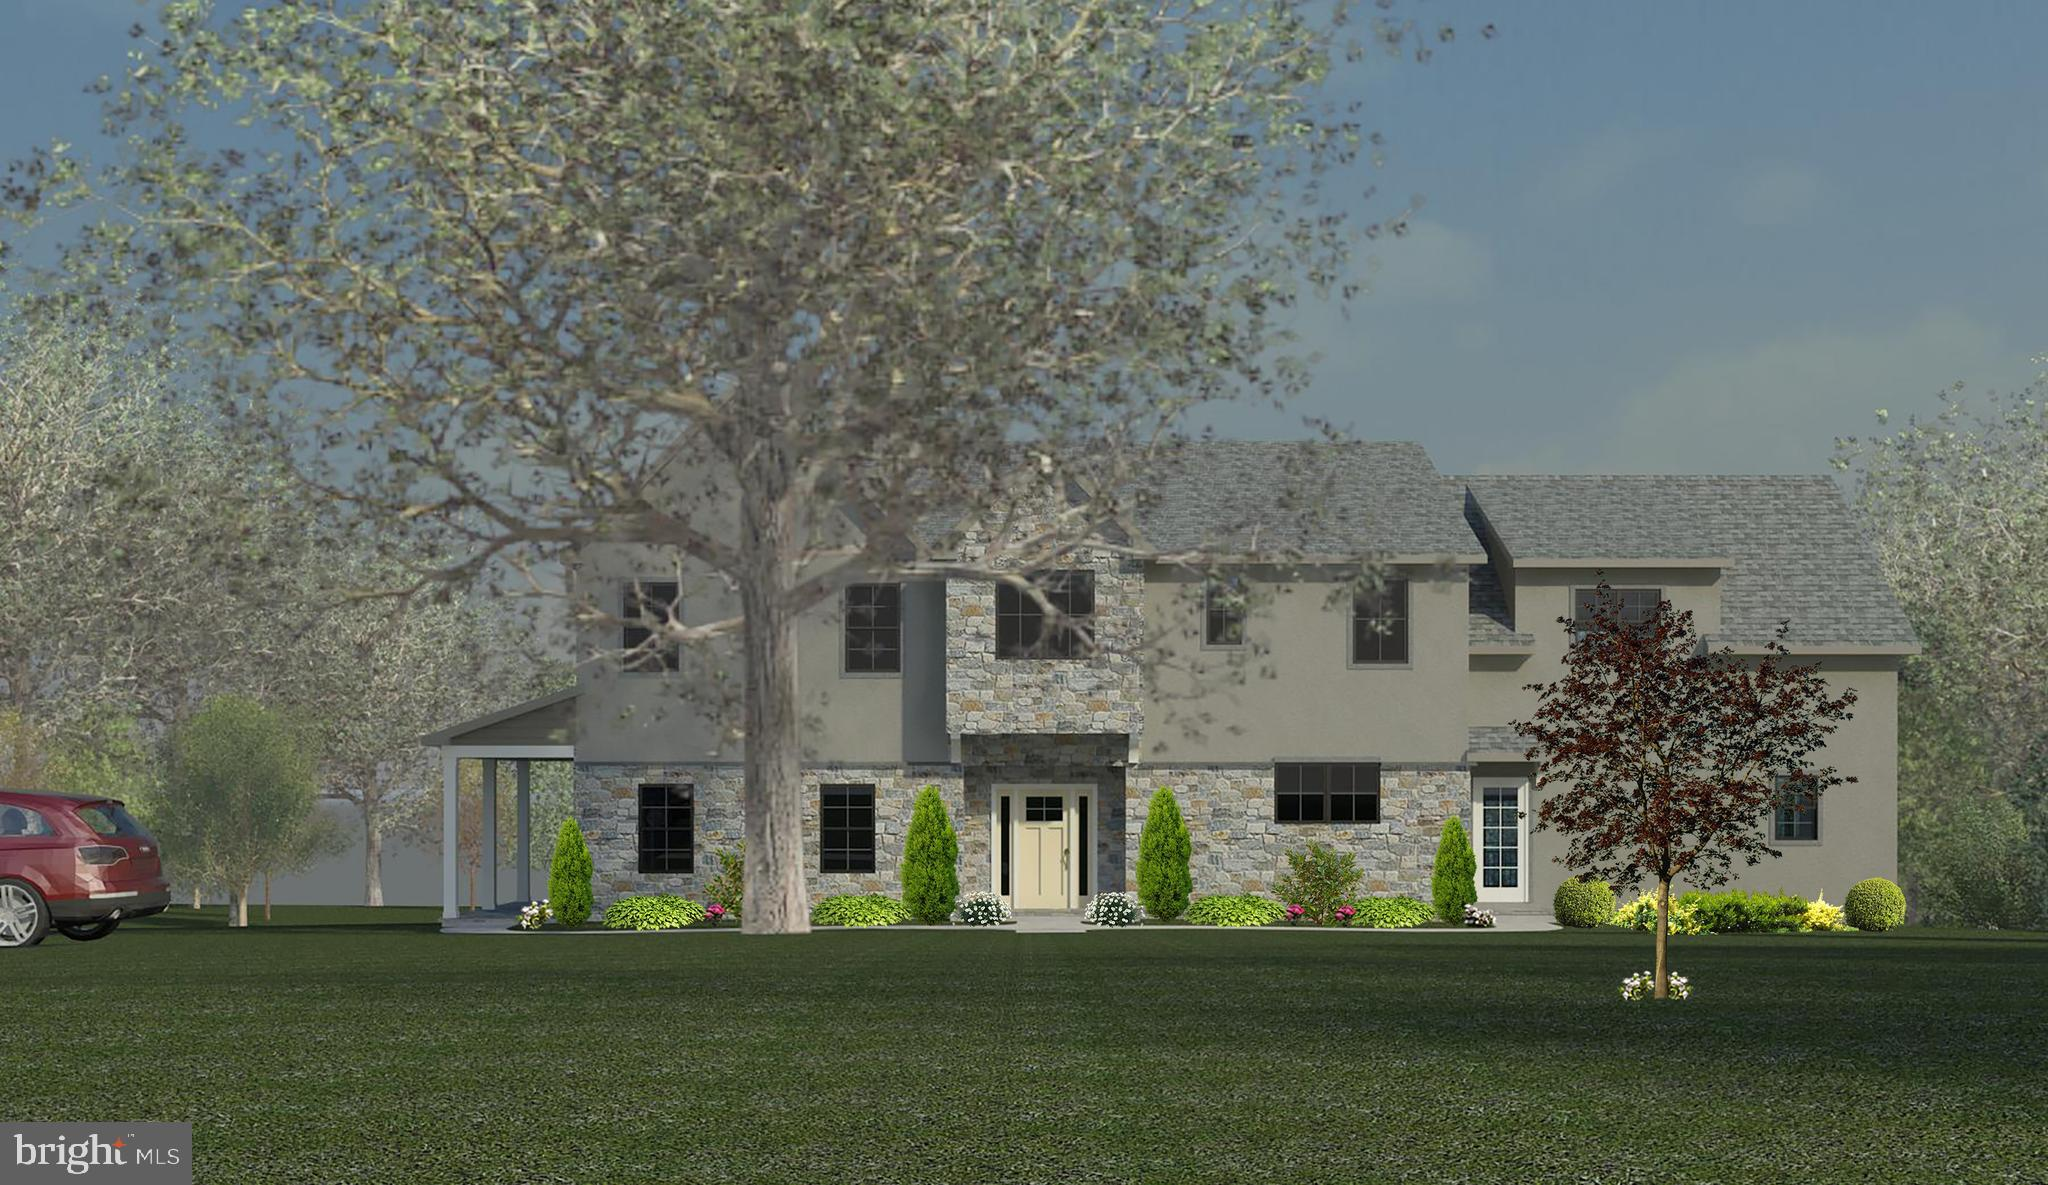 502 TOWNSHIP LINE ROAD, PLYMOUTH MEETING, PA 19462